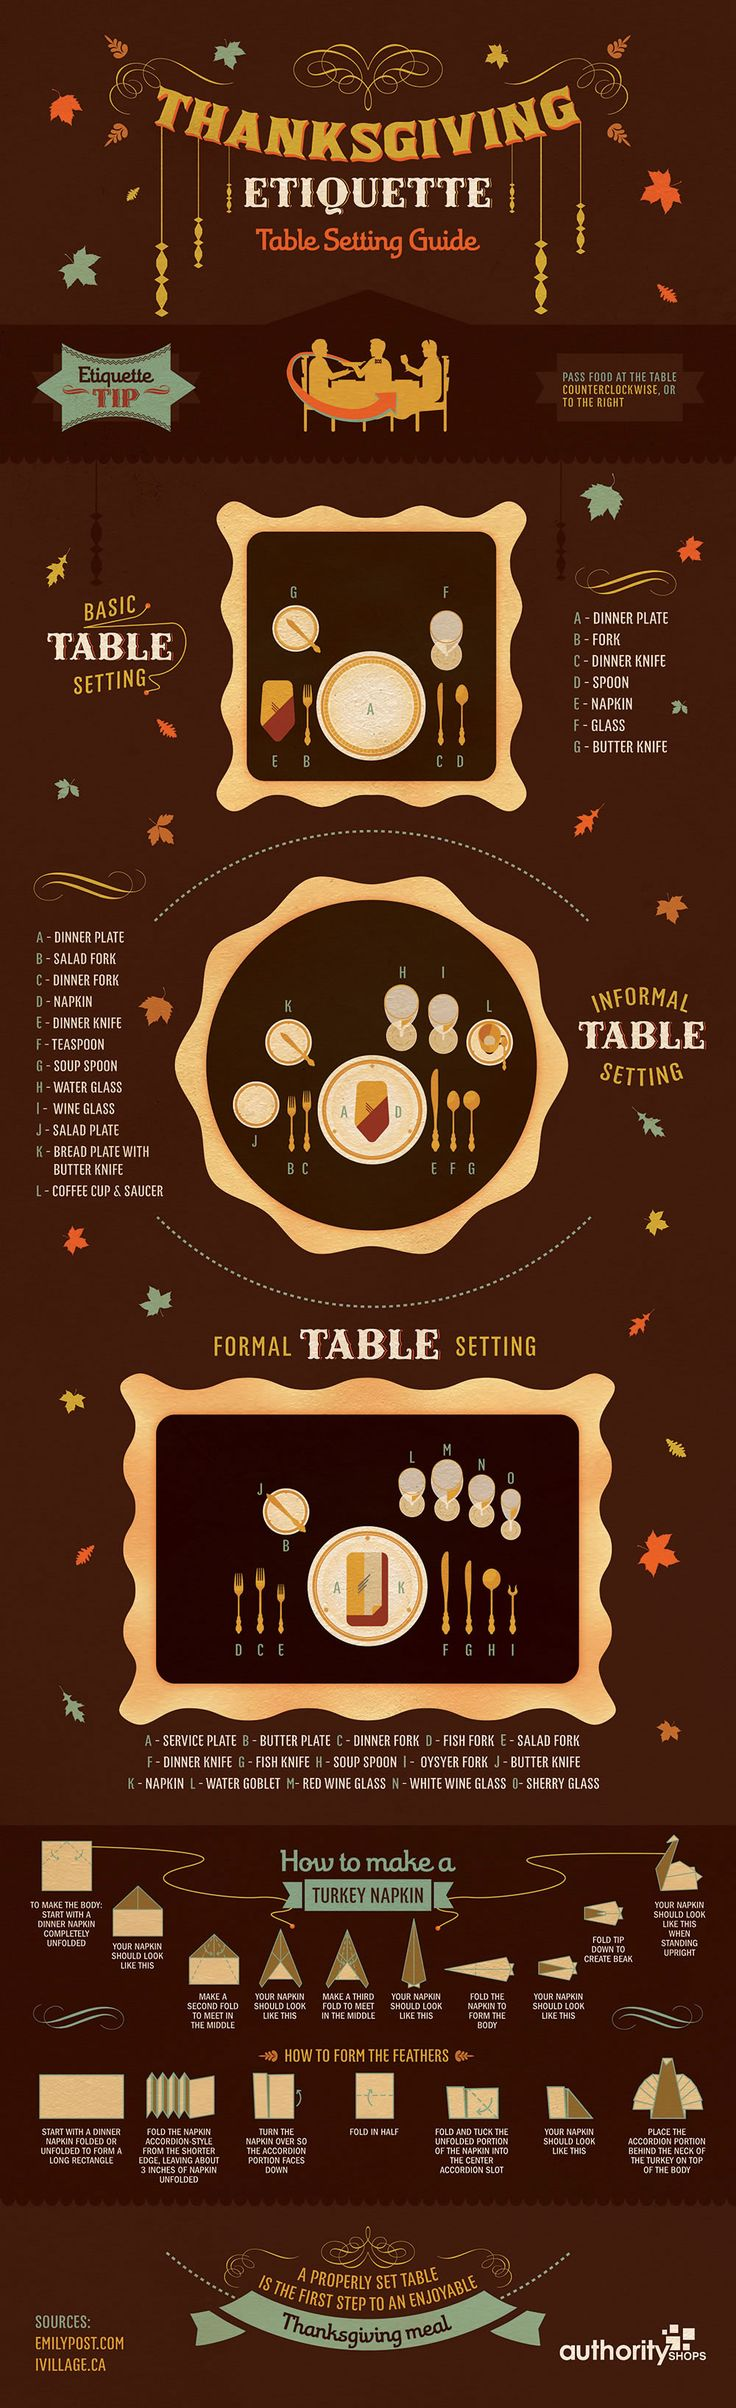 Thanksgiving Table Setting Guide | Infographics Archive